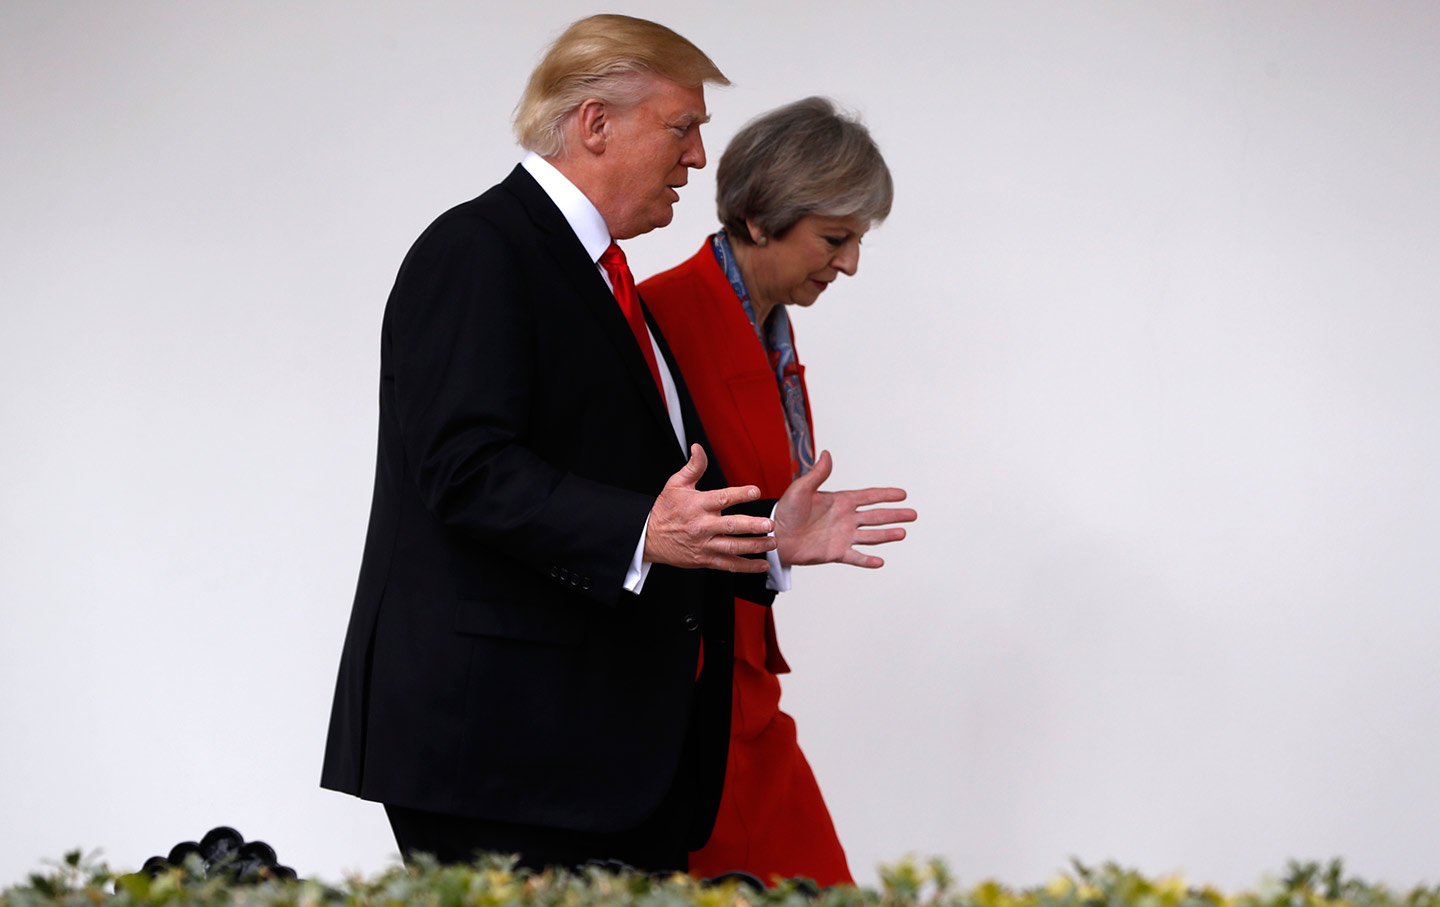 President Donald Trump and British Prime Minister Theresa May walk along the colonnades of the White House in Washington on January 27, 2017. (AP Photo / Pablo Martinez Monsivais)